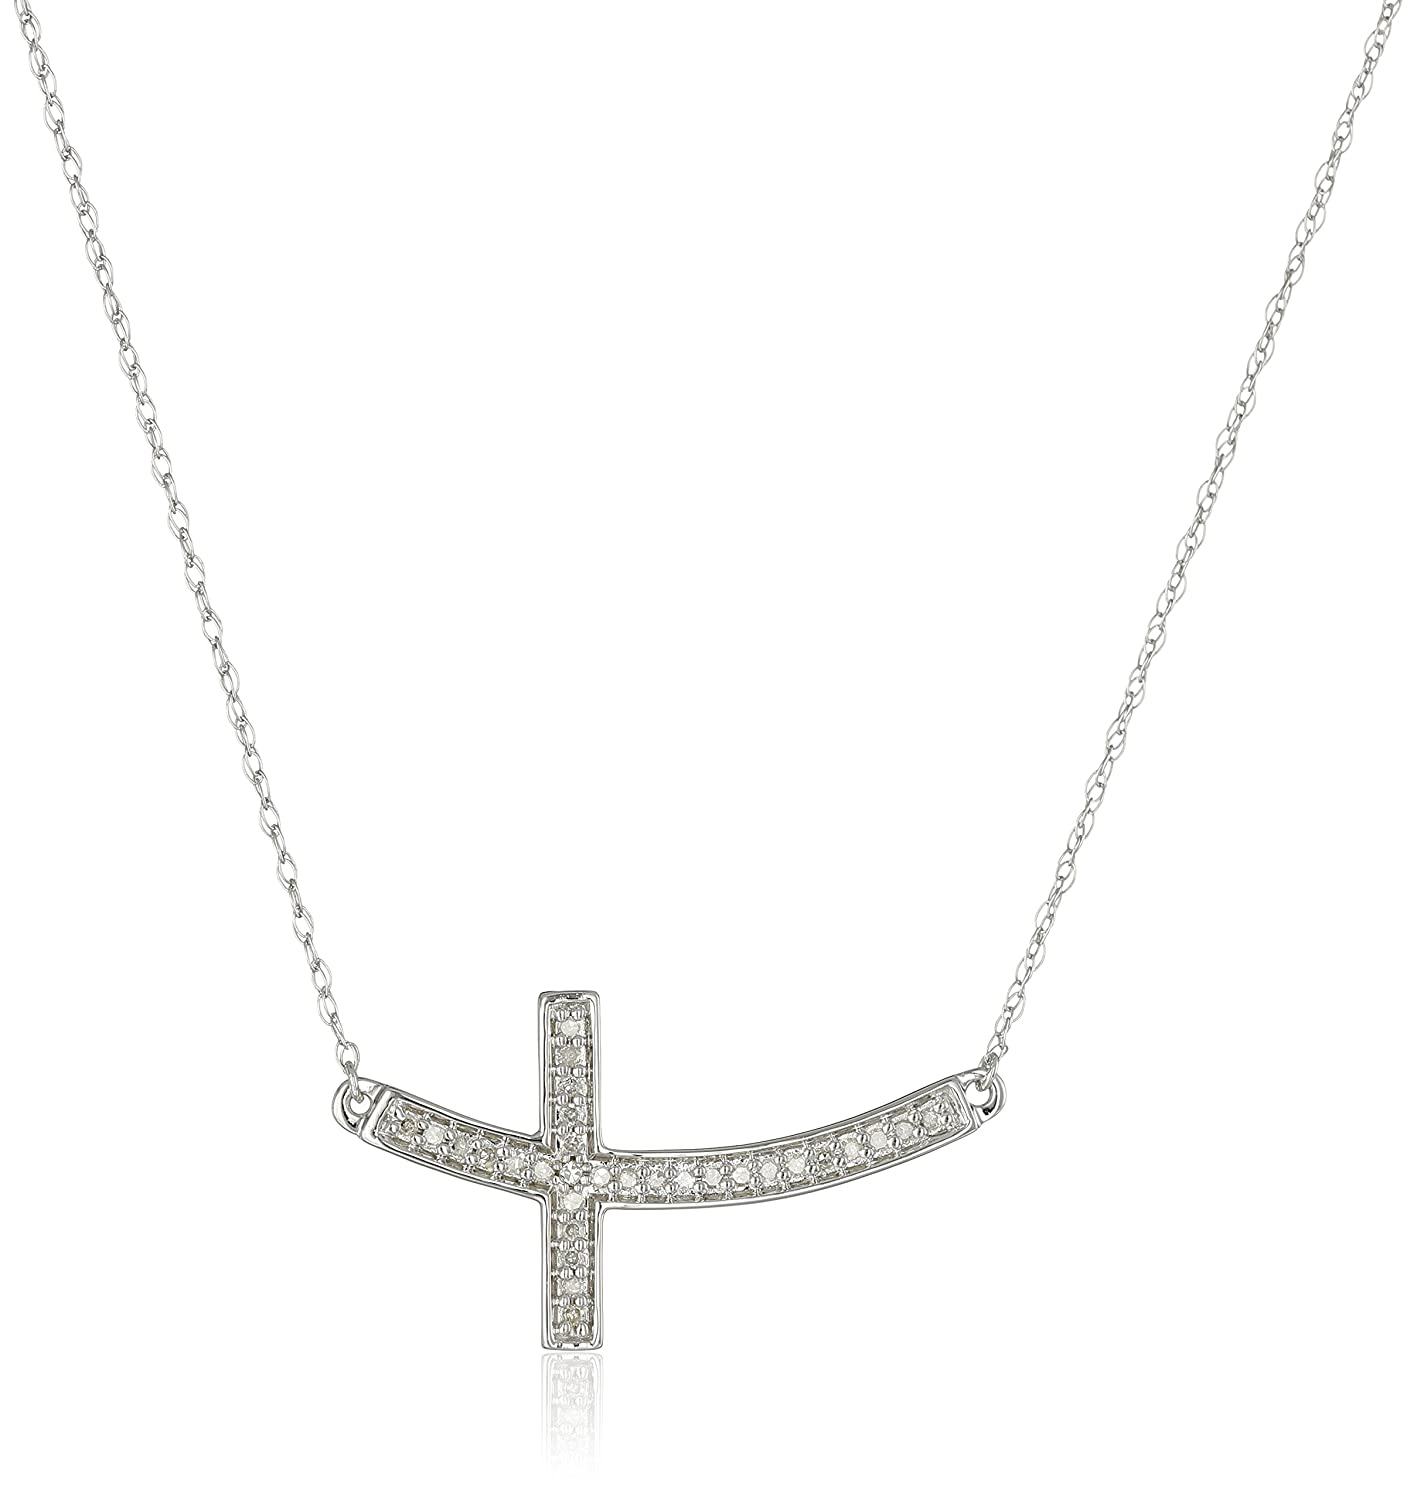 10k White Gold Diamond Sideways Cross Pendant Necklace (1/10cttw, I-J Color, I2-I3 Clarity), 17""